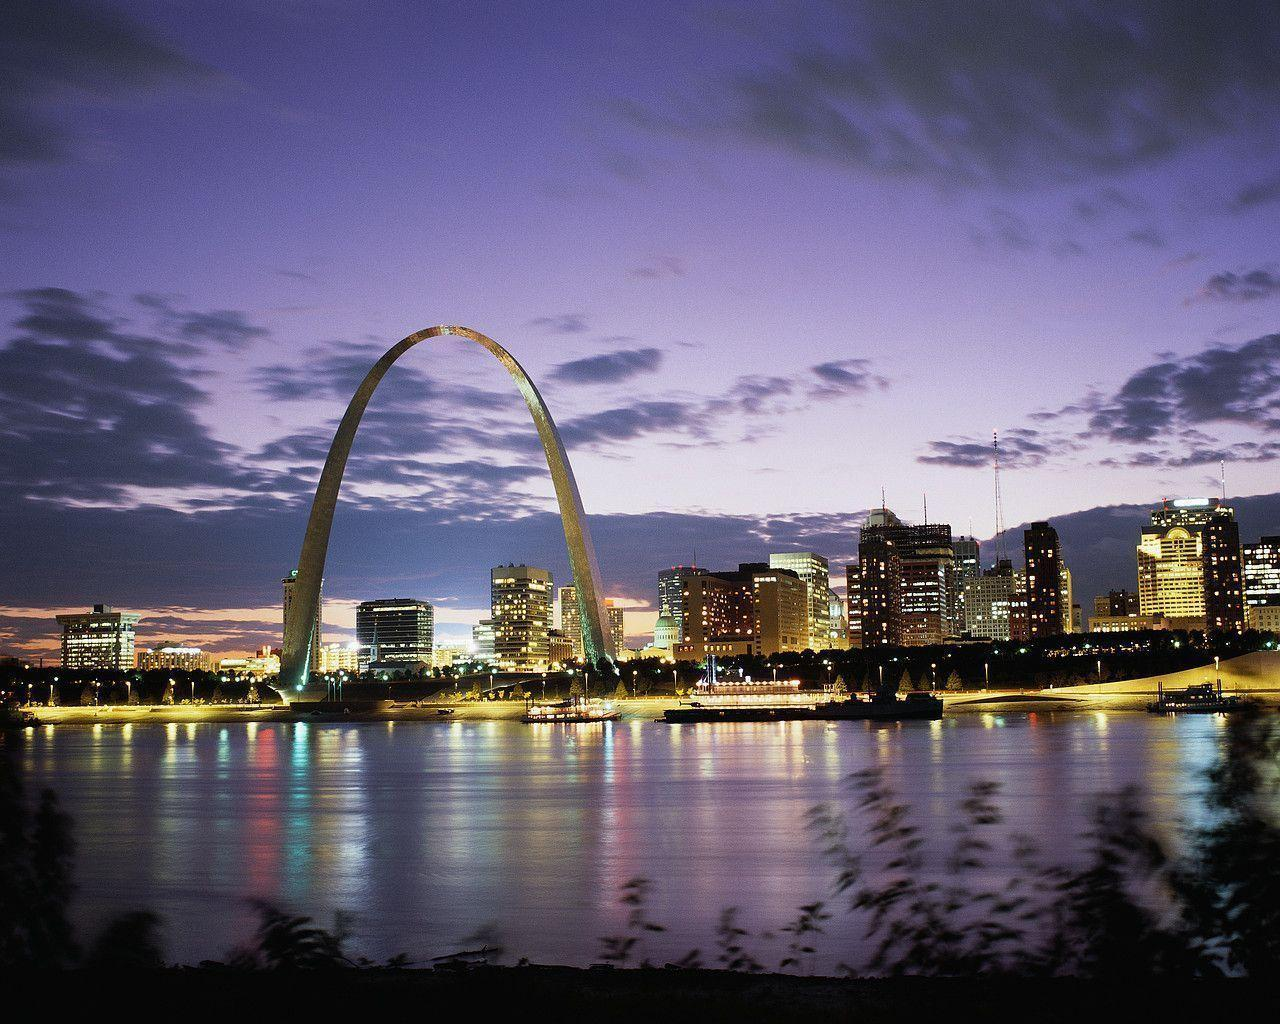 St. Louis Desktop Wallpaper Free 16797 Images | wallgraf.